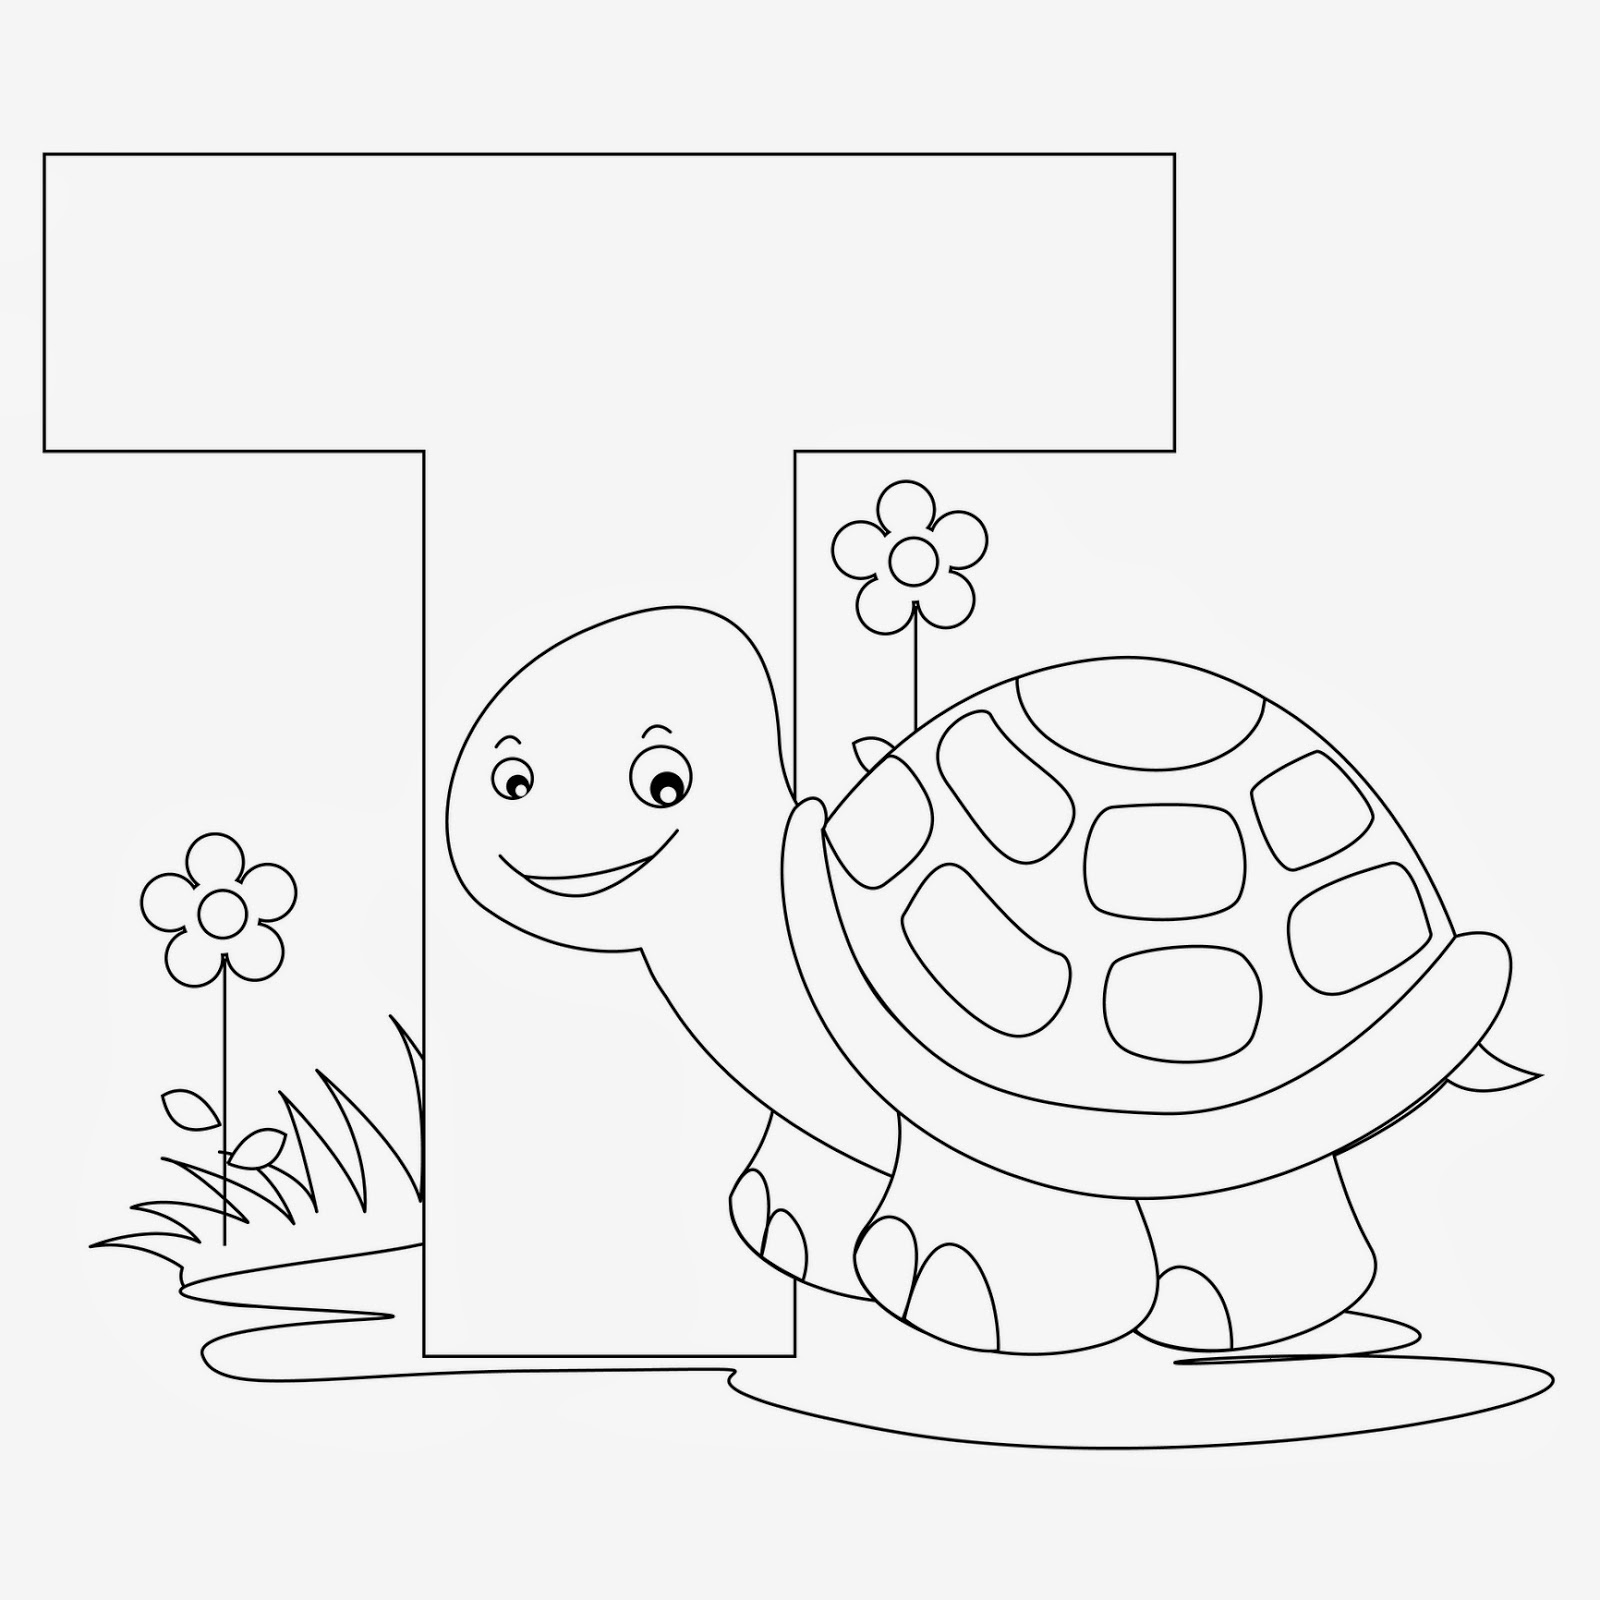 alphabet coloring worksheets 78 alphabet coloring pages uppercase and lowercase worksheets alphabet coloring